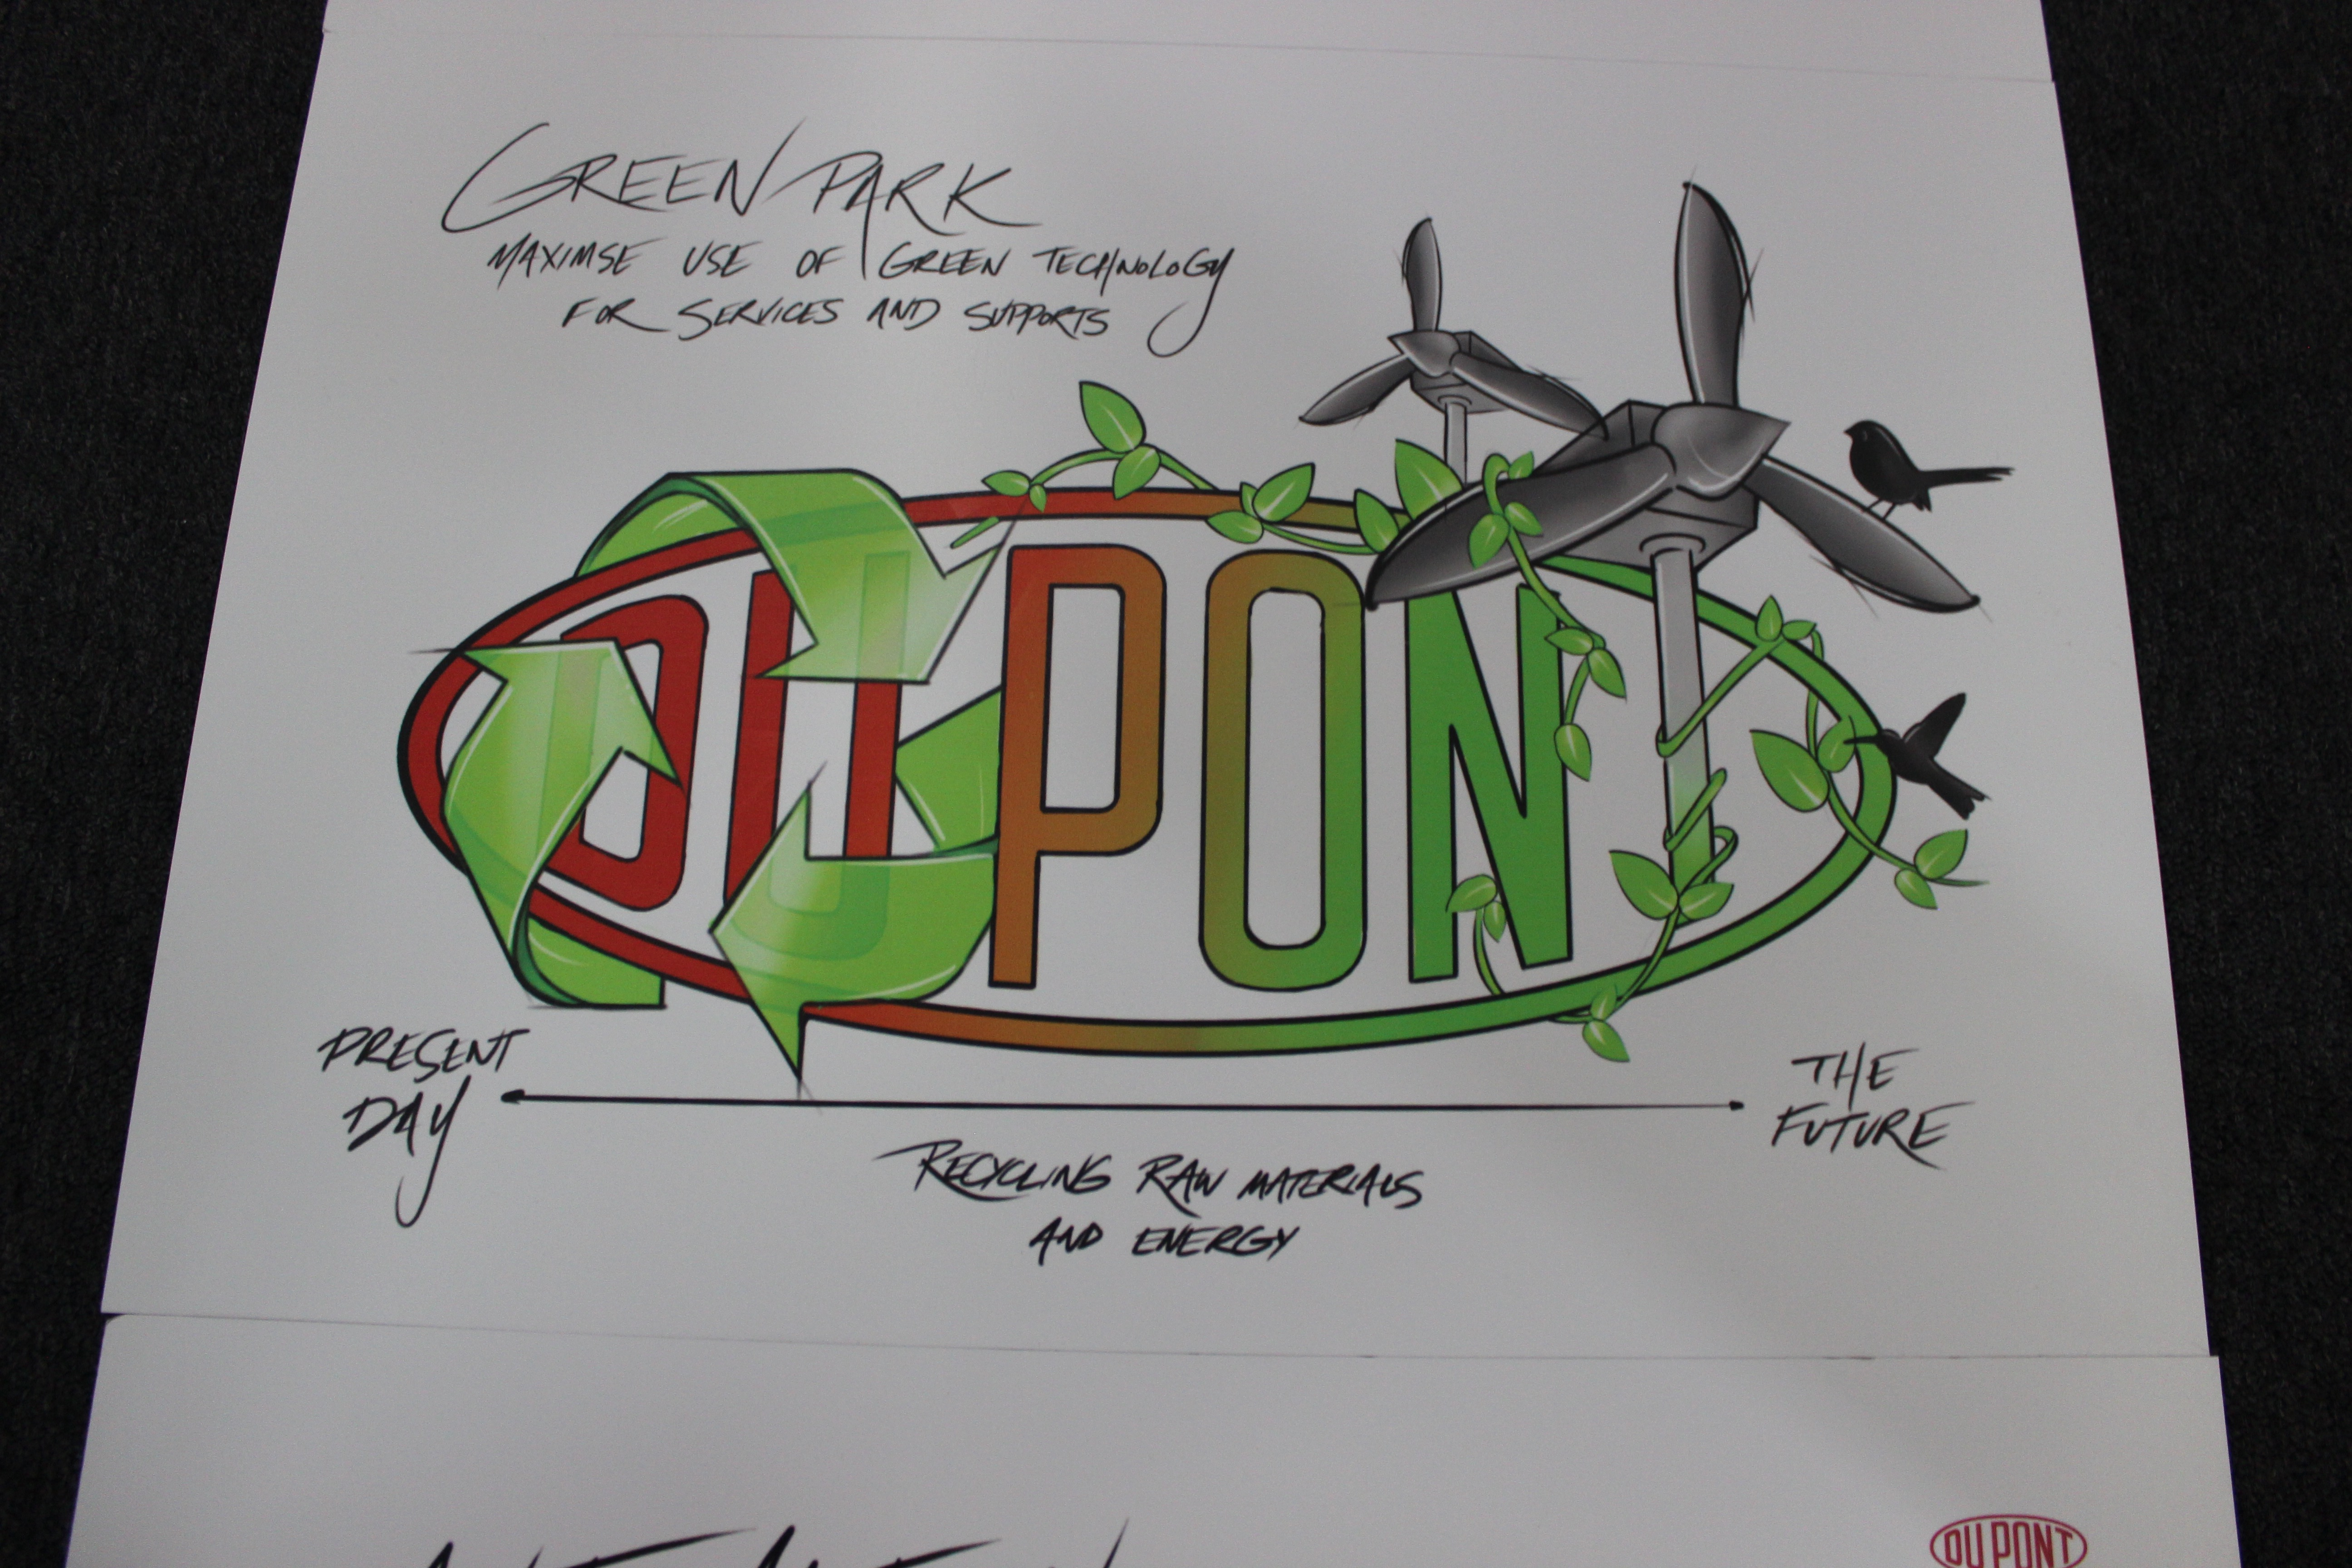 Dupont Project Image 4